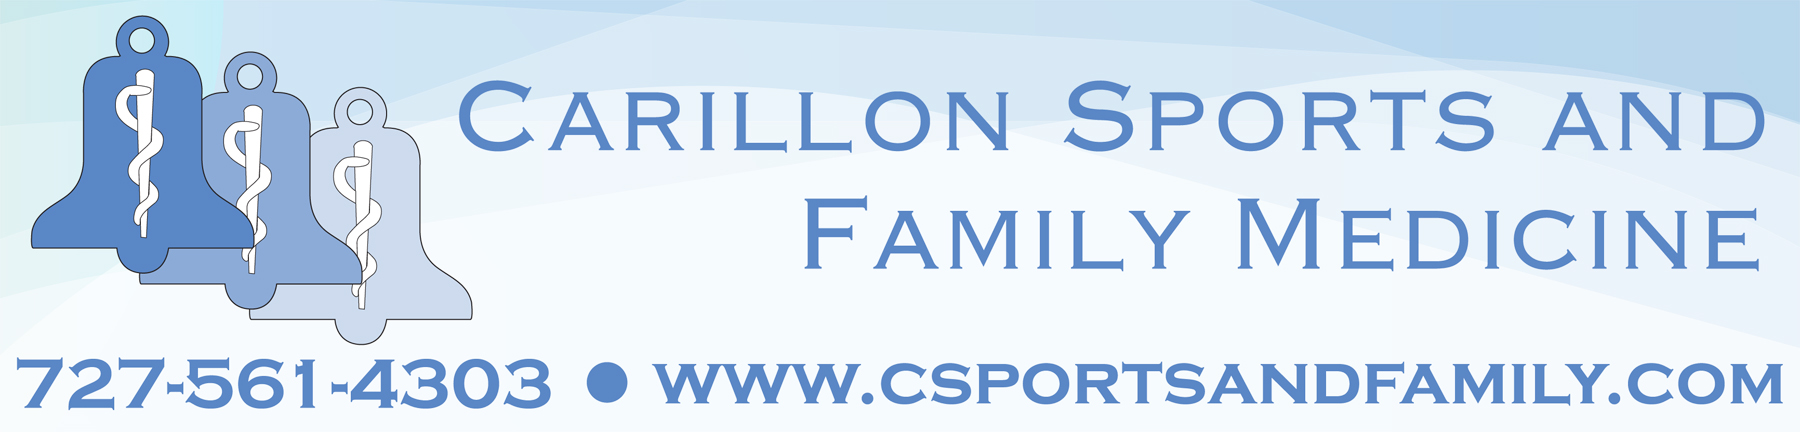 Carillon Sports and Family Medicine